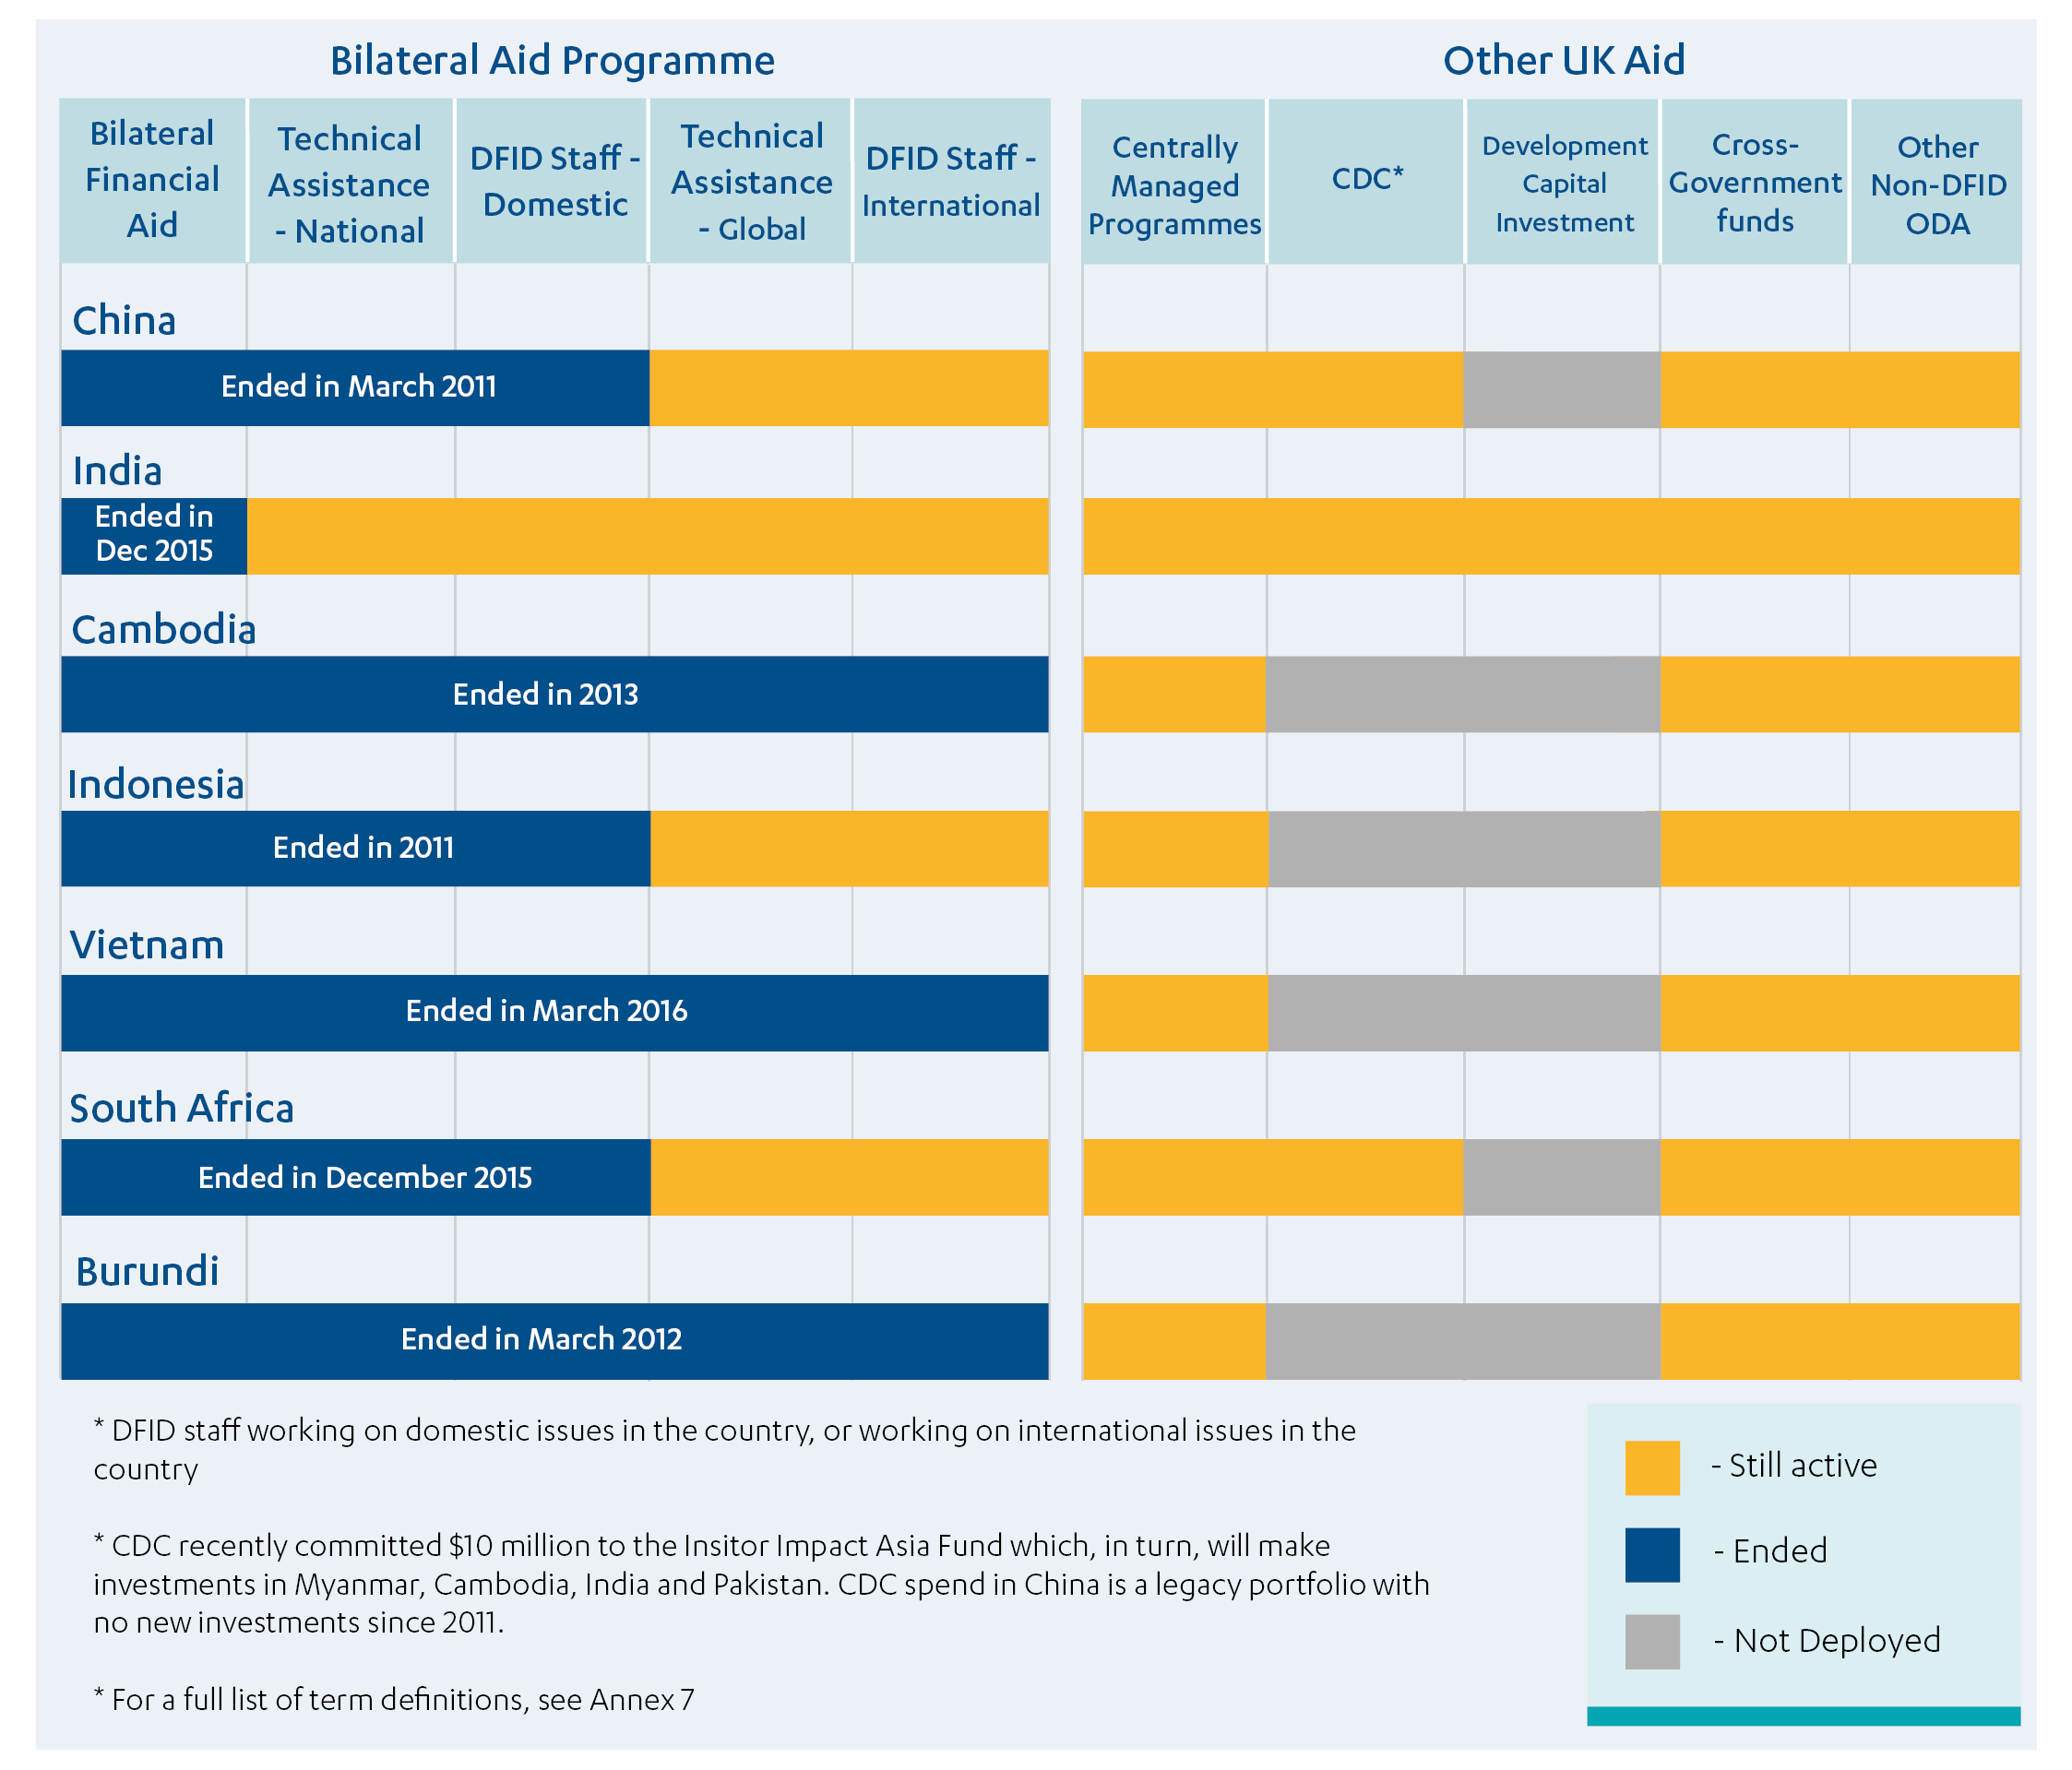 Types of aid deployed in seven case study countries, including bilateral, technical assistance, centrally managed funding, from CDC, cross-government and non-DFID